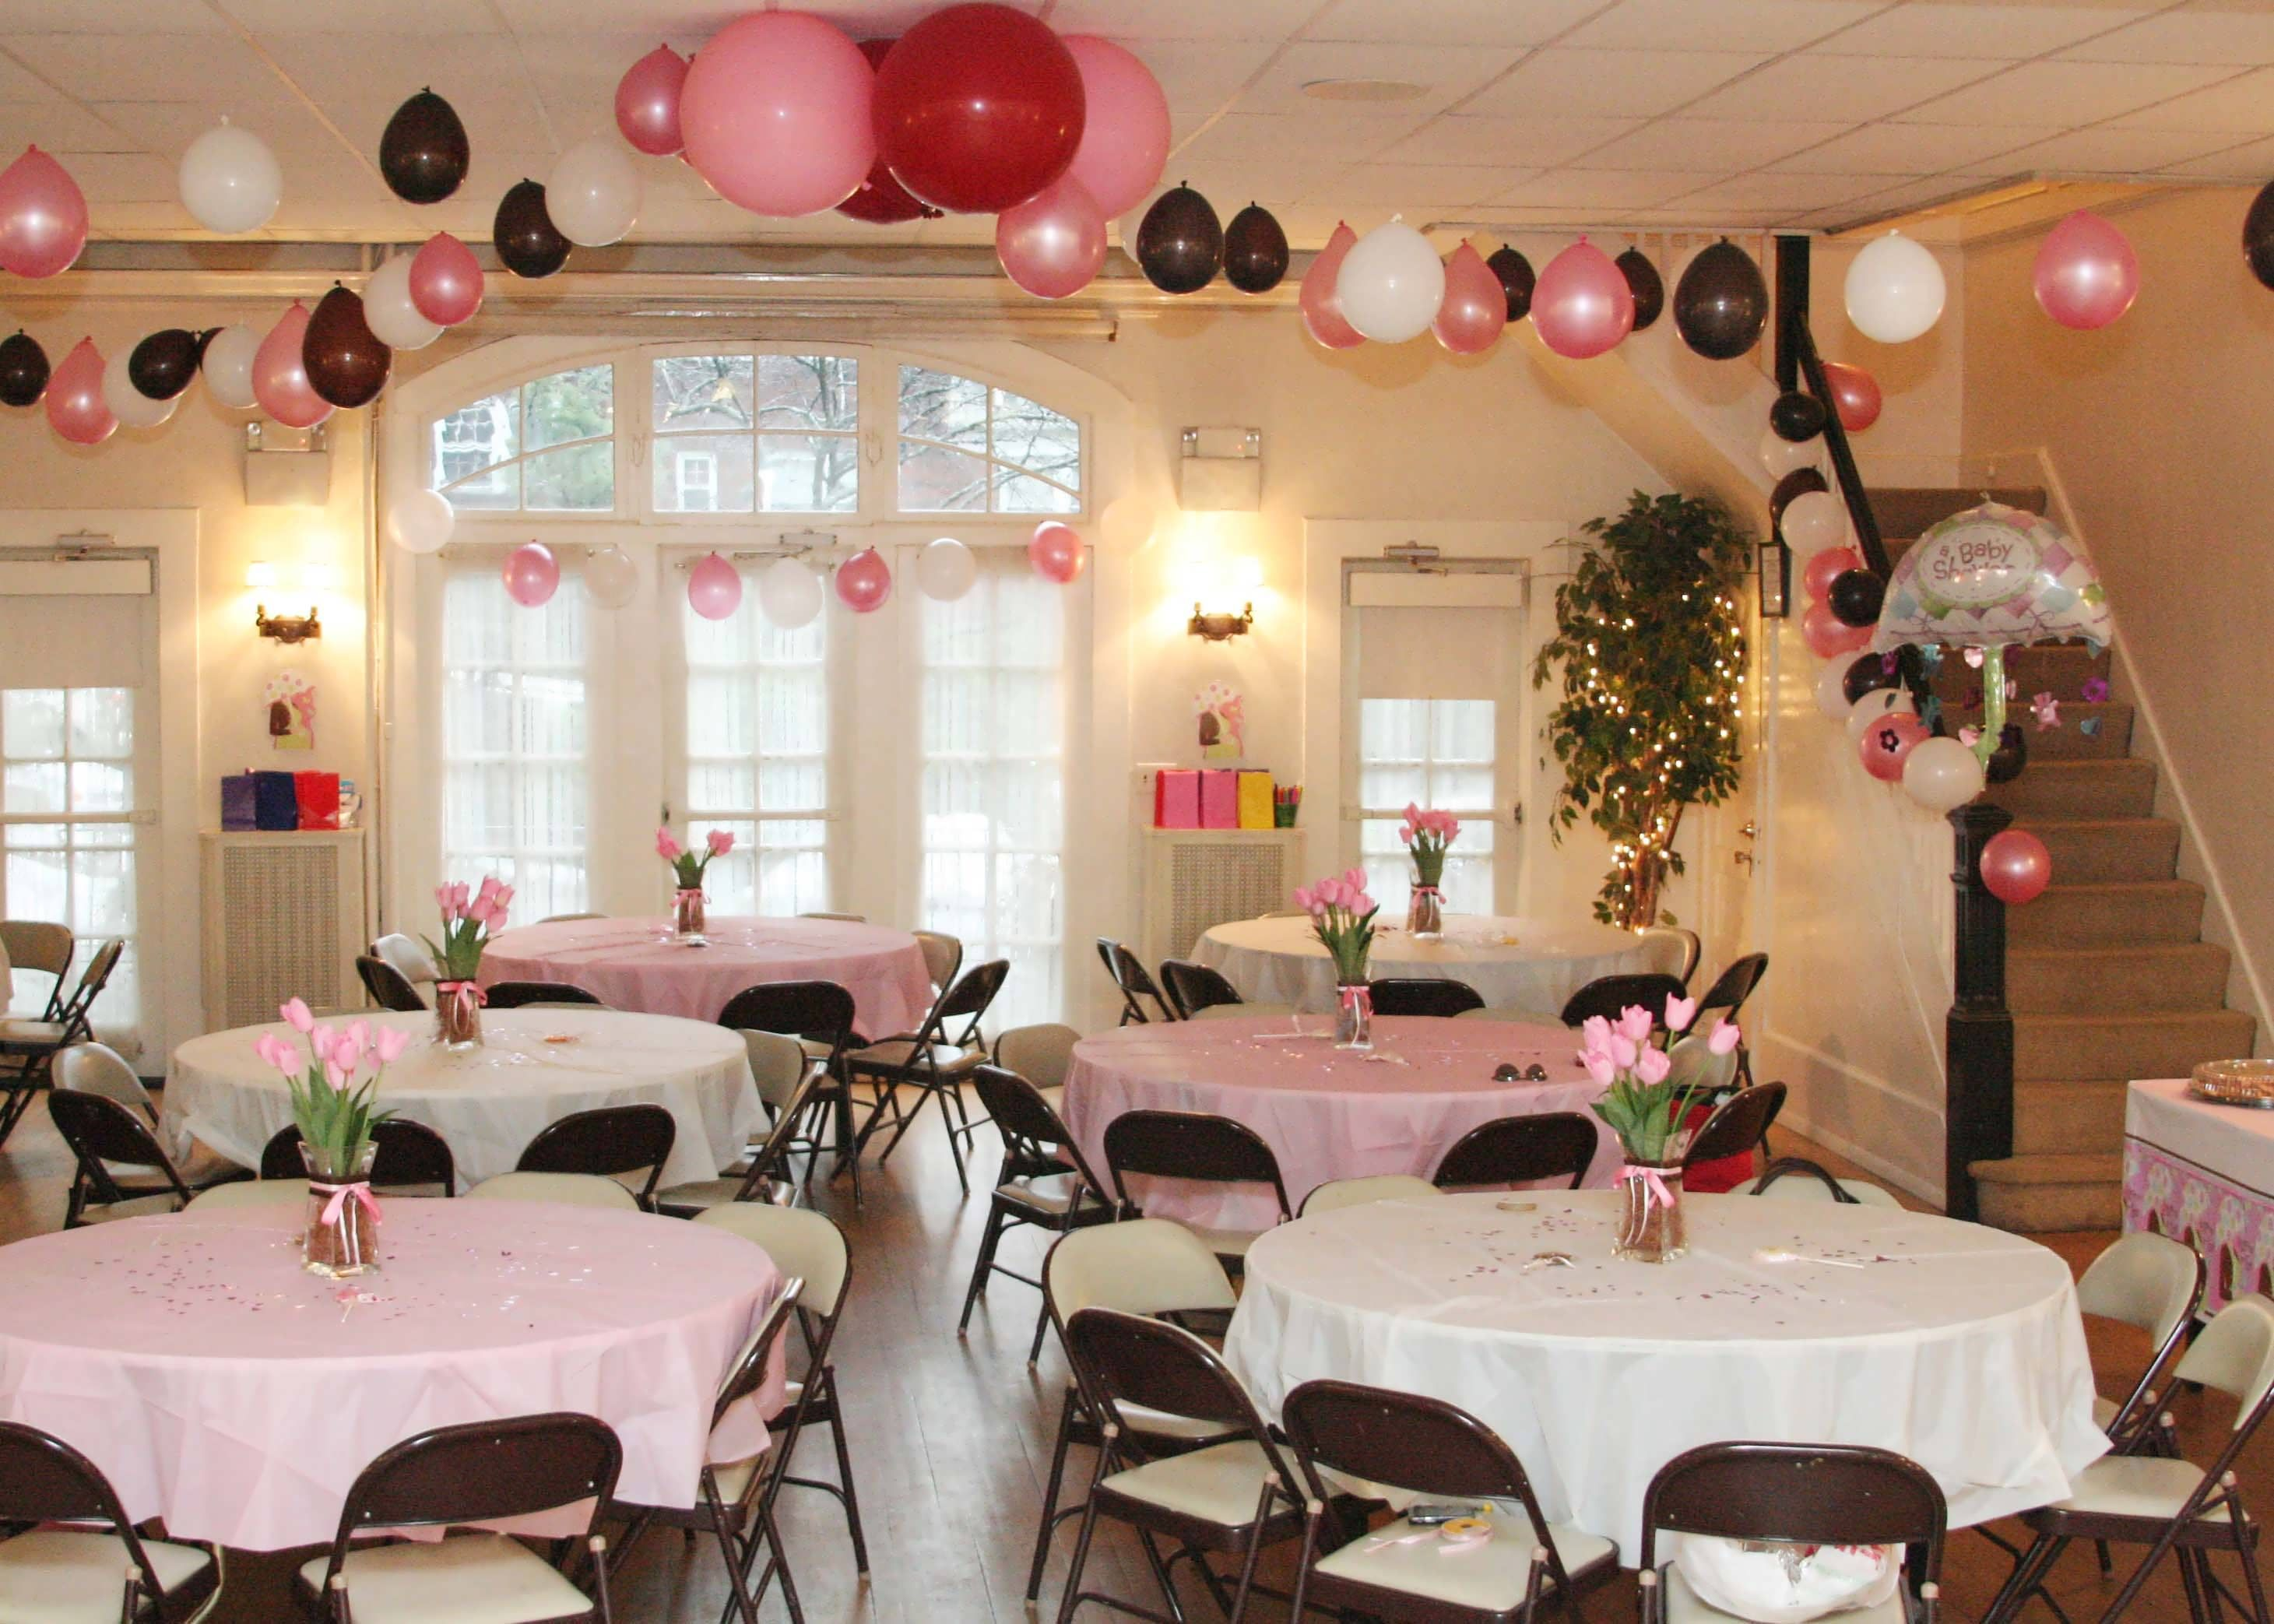 Bridal Shower Brunch Venues In Nyc Baby Shower Venues Bridal Shower Venues Baby Shower Locations